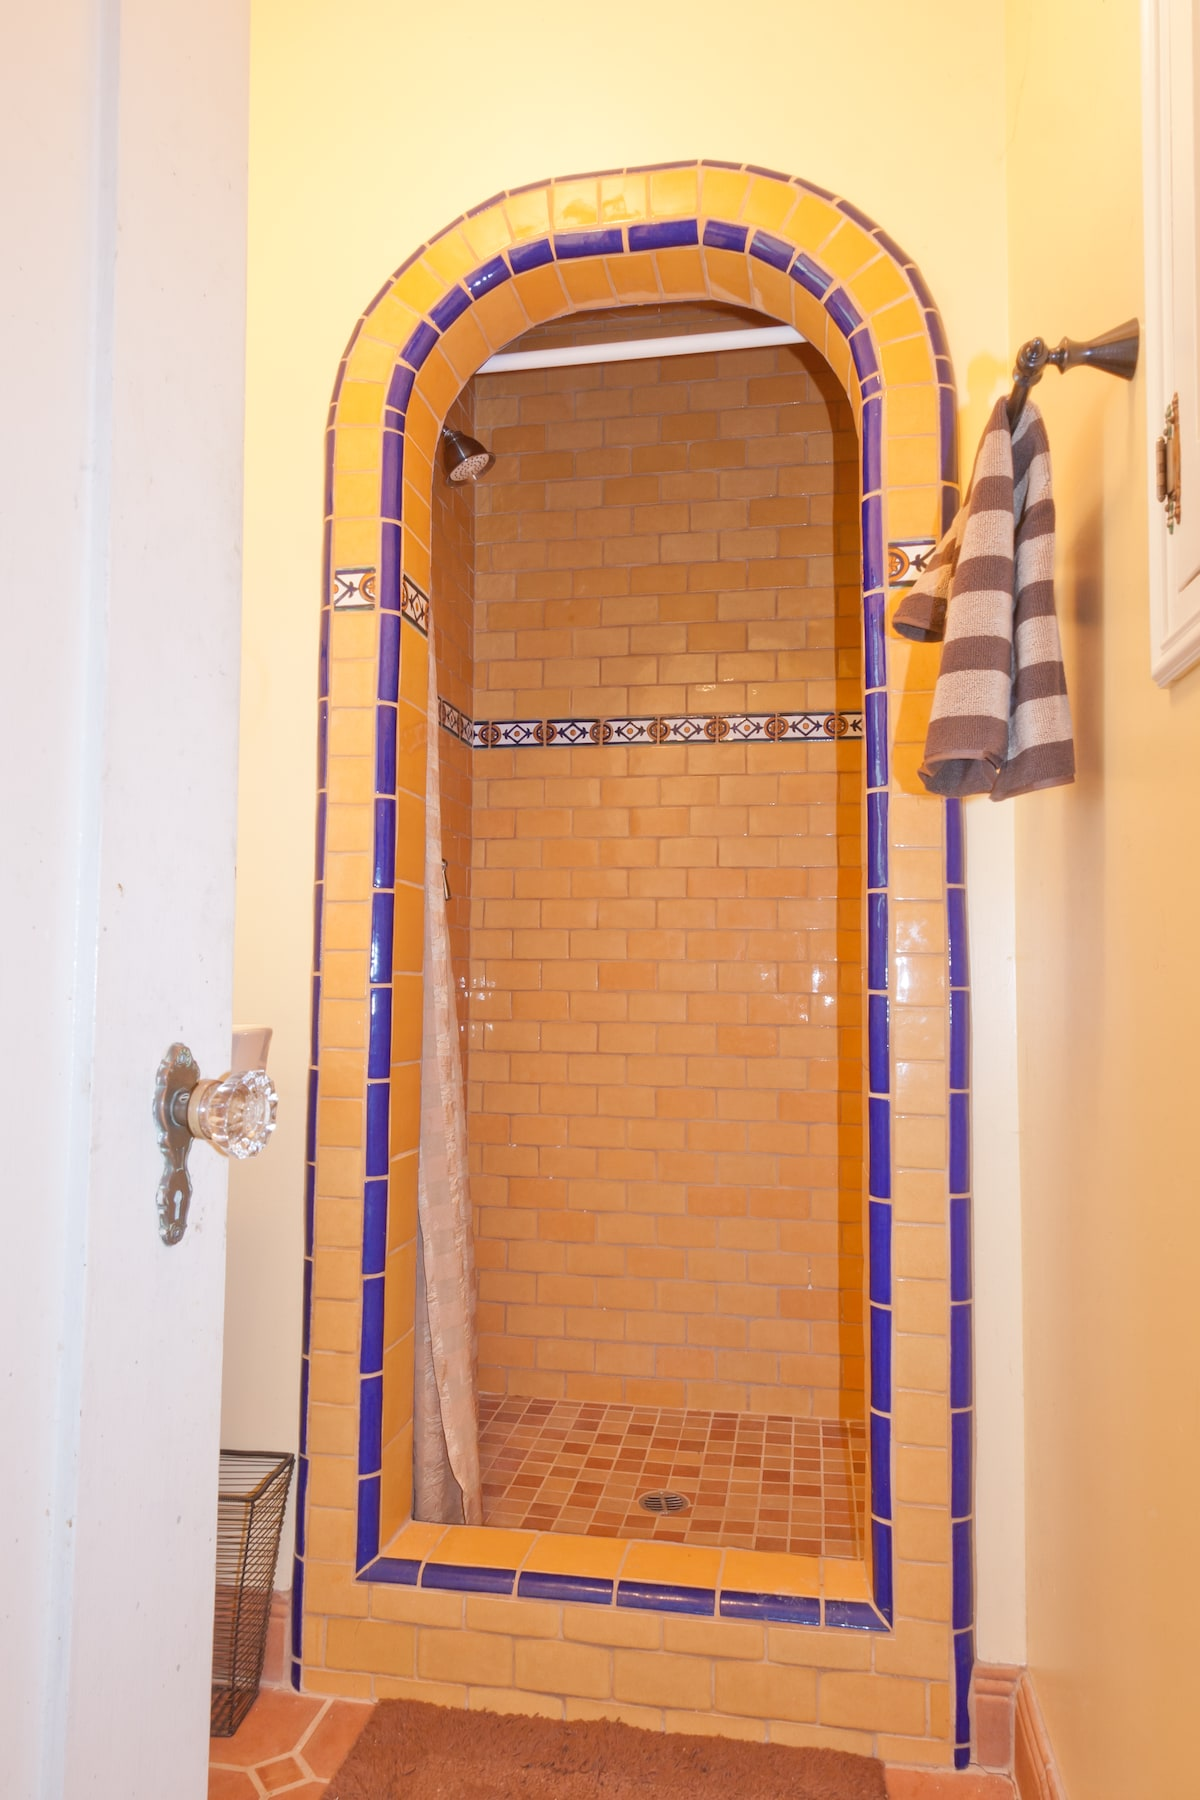 Downstairs Bathroom with cool Spanish period shower